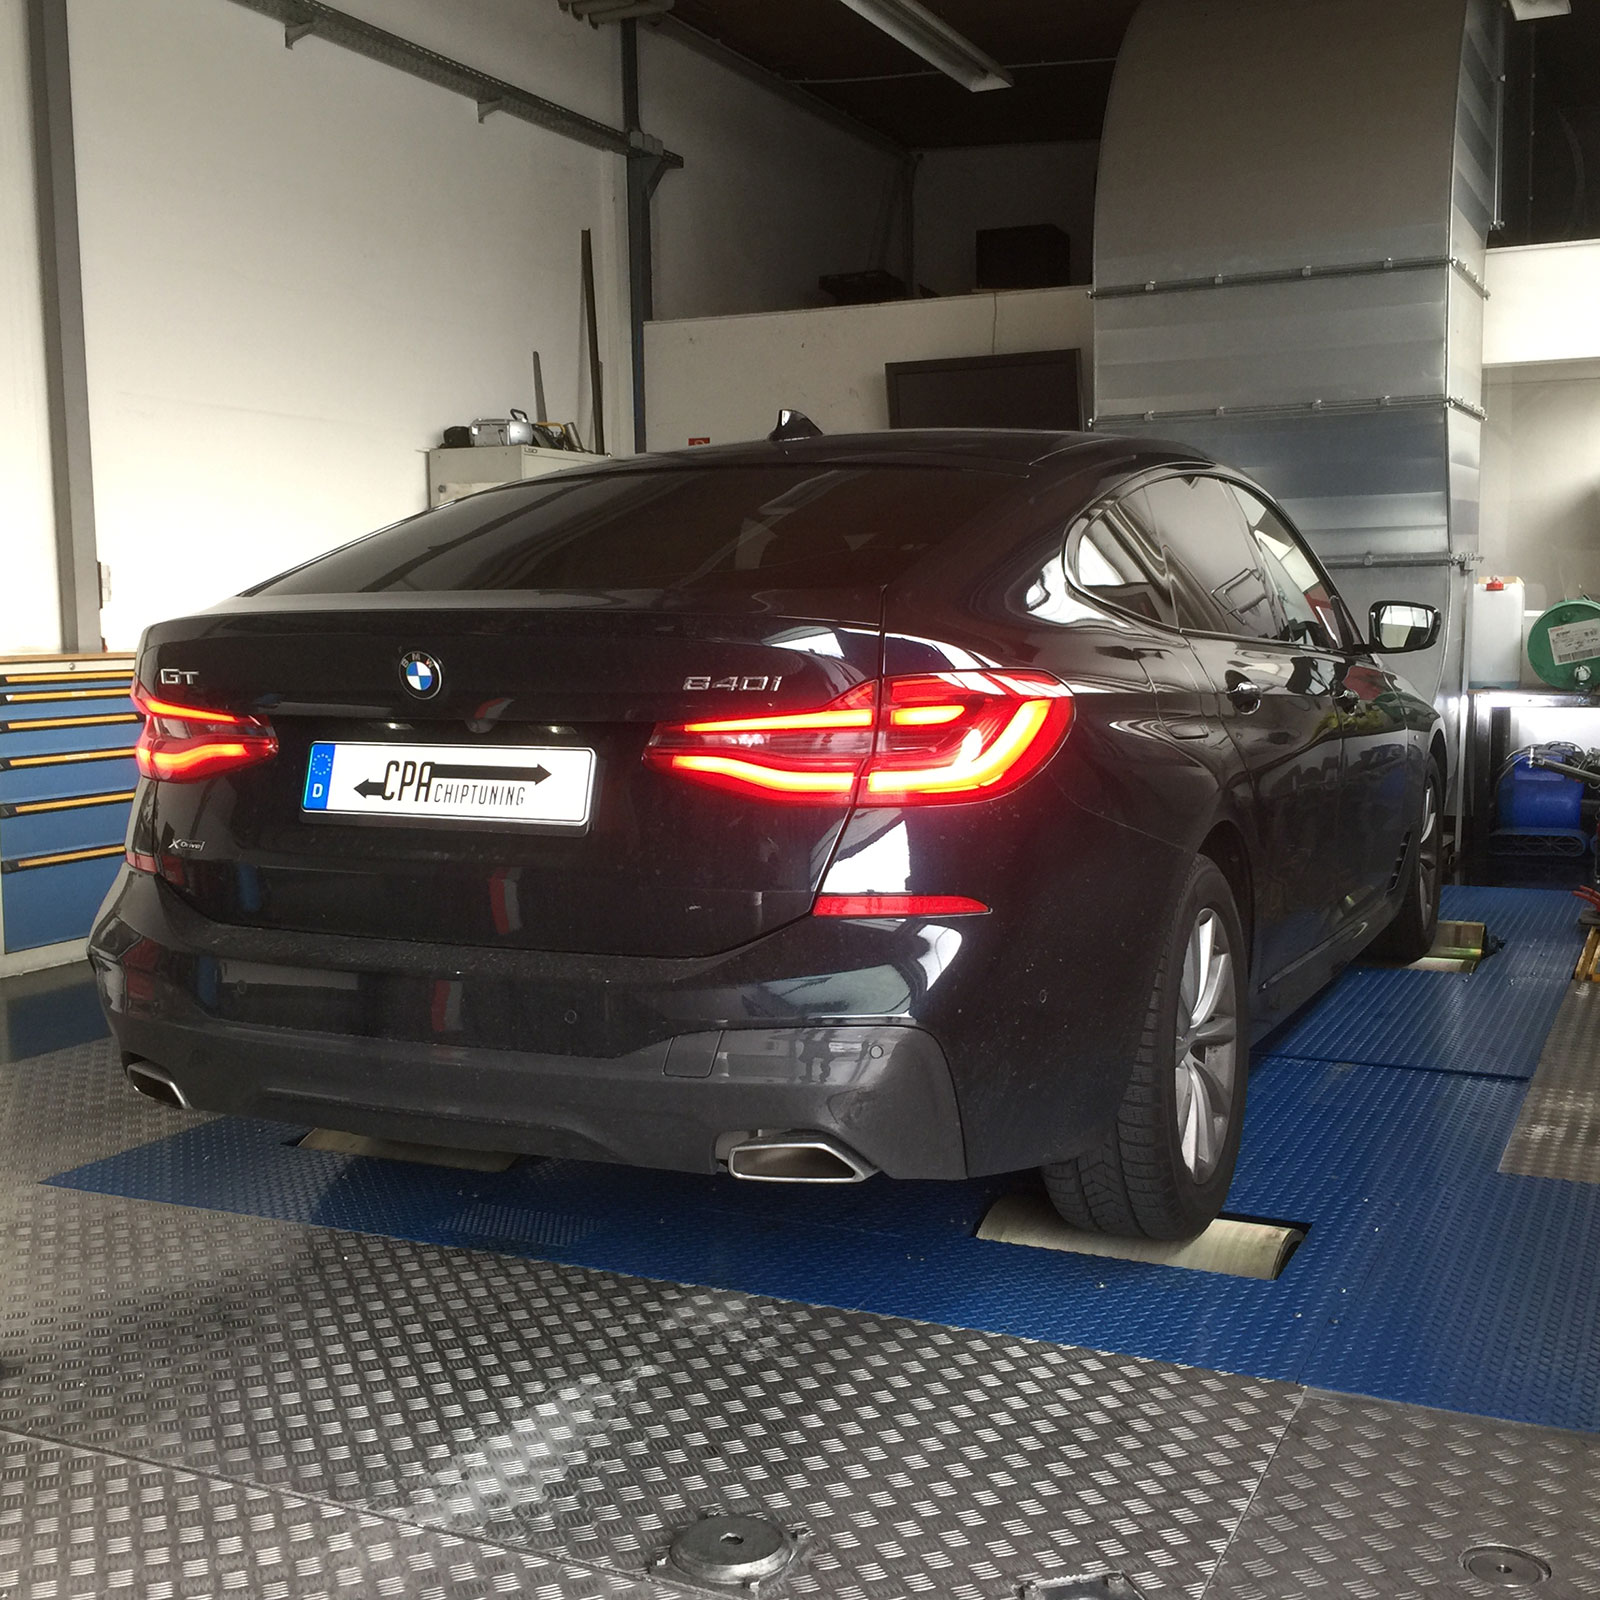 Chiptuning BMW: developed on the dyno